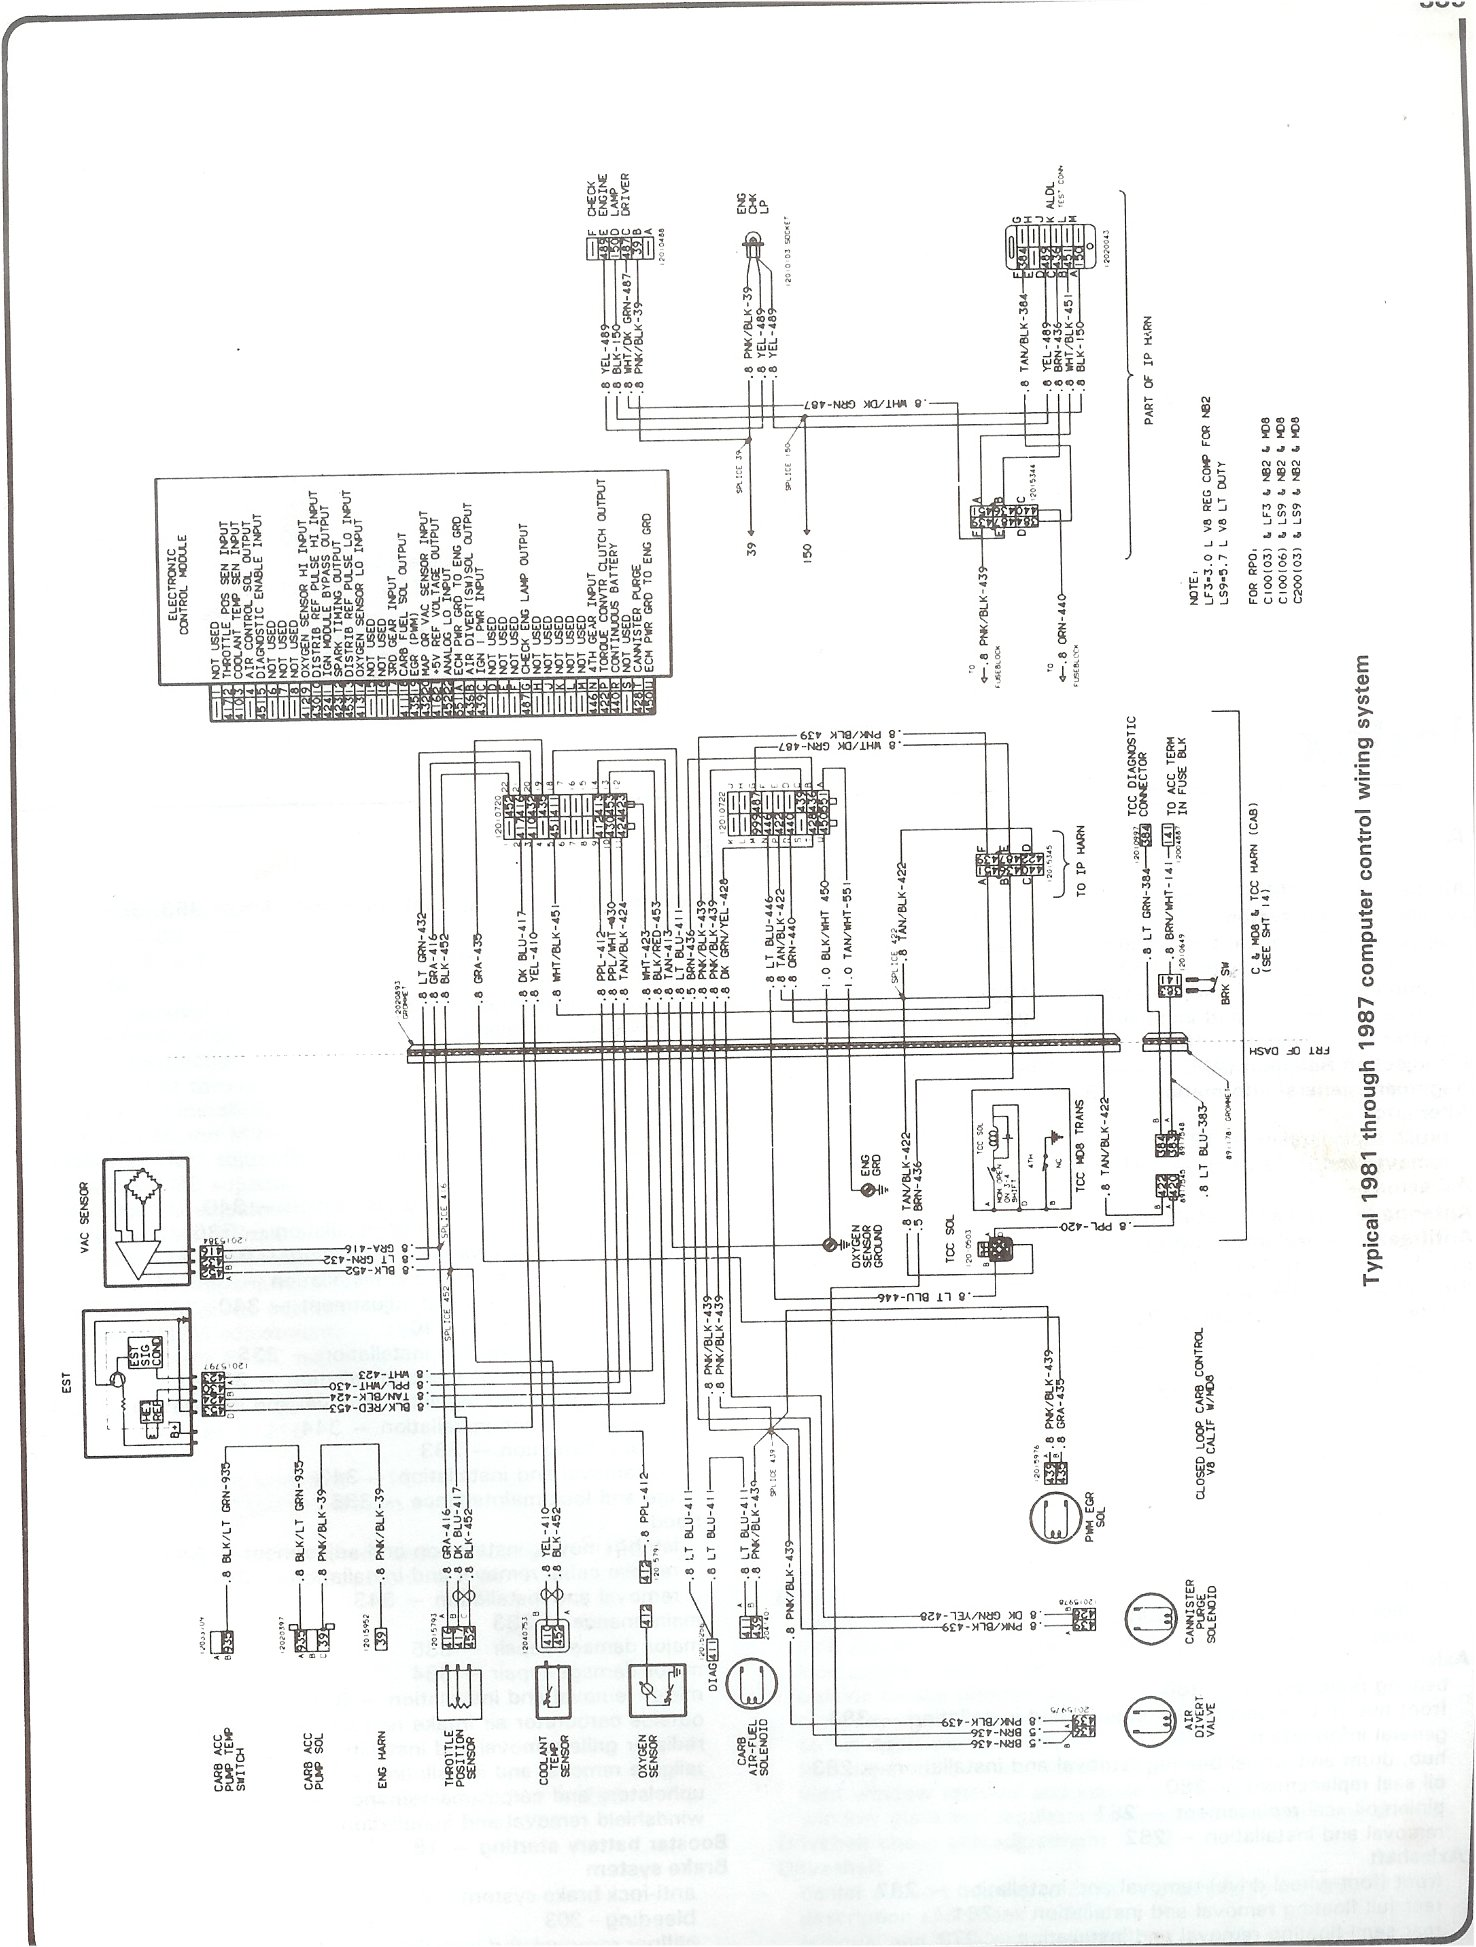 81 87_computer_control_wiring complete 73 87 wiring diagrams 1986 chevy k10 wiring harness at gsmportal.co